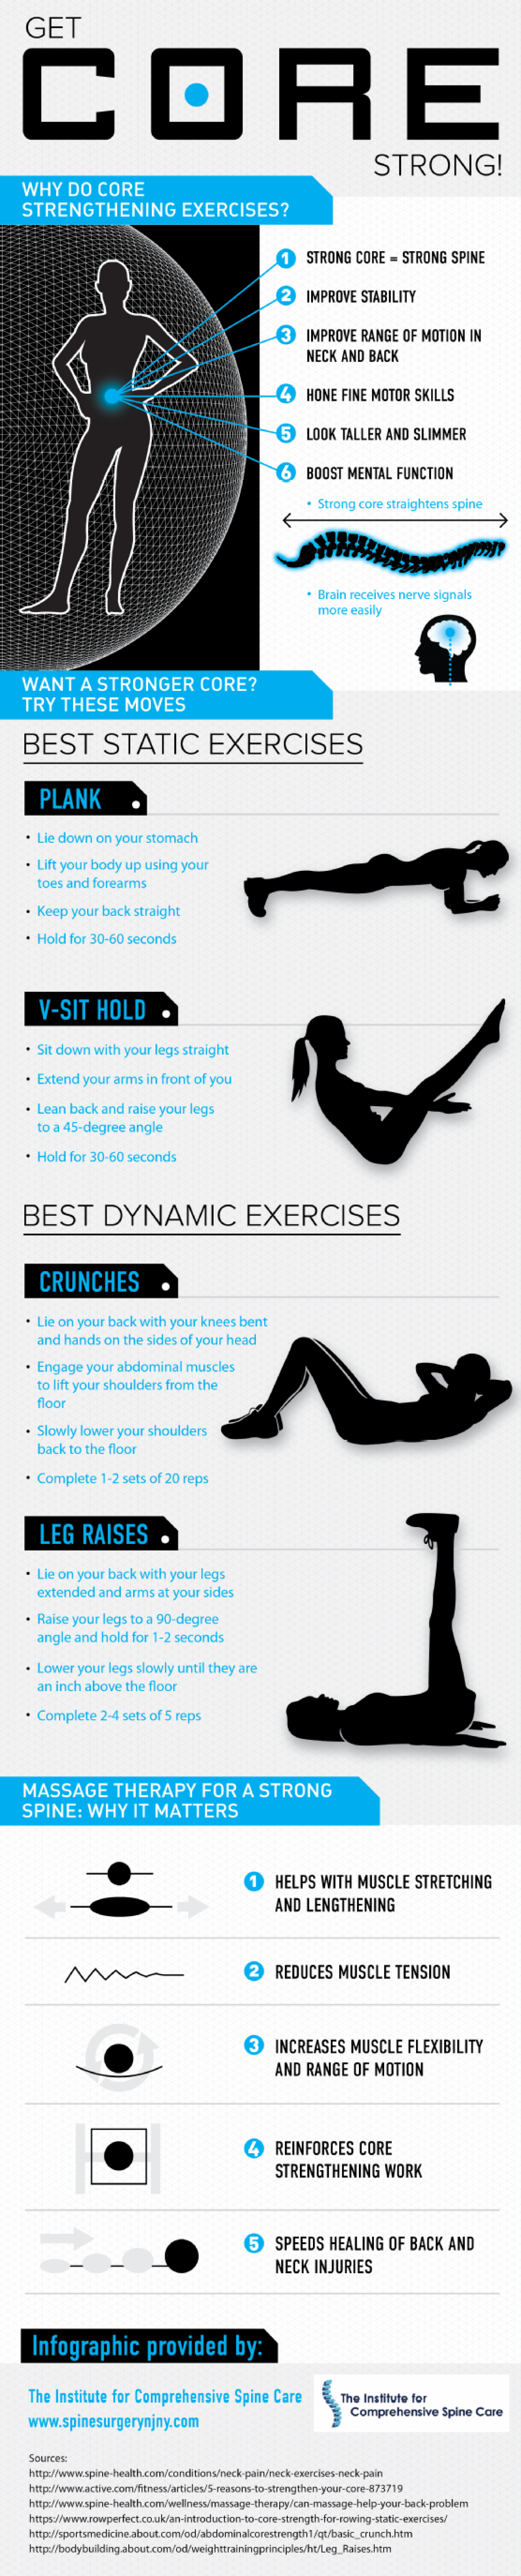 Get Core Strong! Infographic